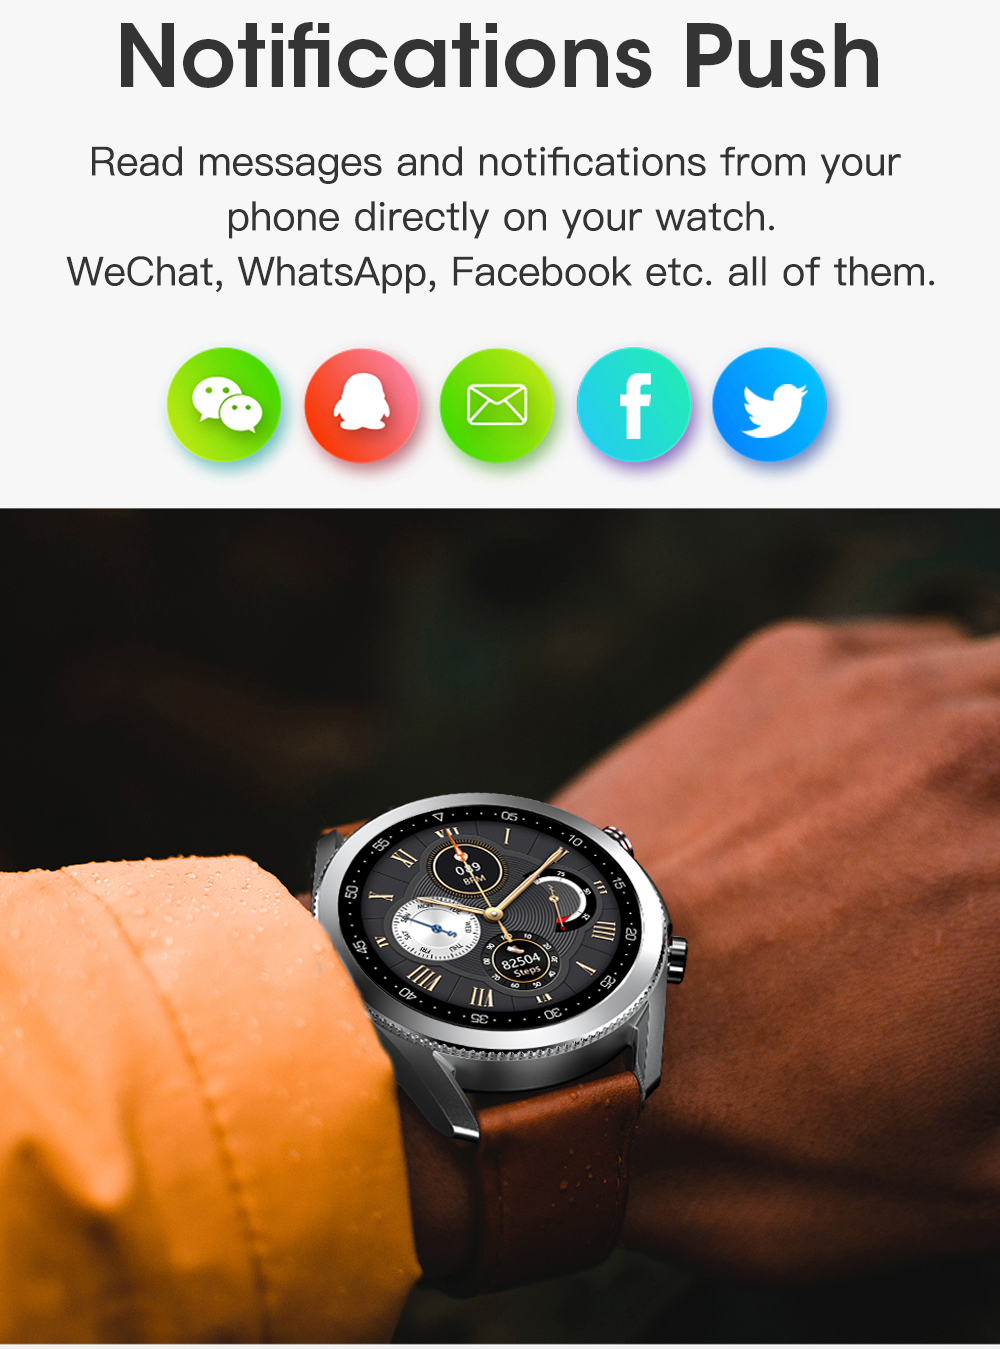 Ha2a0be6149d742c2a41e6b9346652c20l Timewolf Smart Watch Men 2021 IP68 Waterproof Android Full Touch Sports Smartwatch Bluetooth Call For Samsung Huawei Android IOS